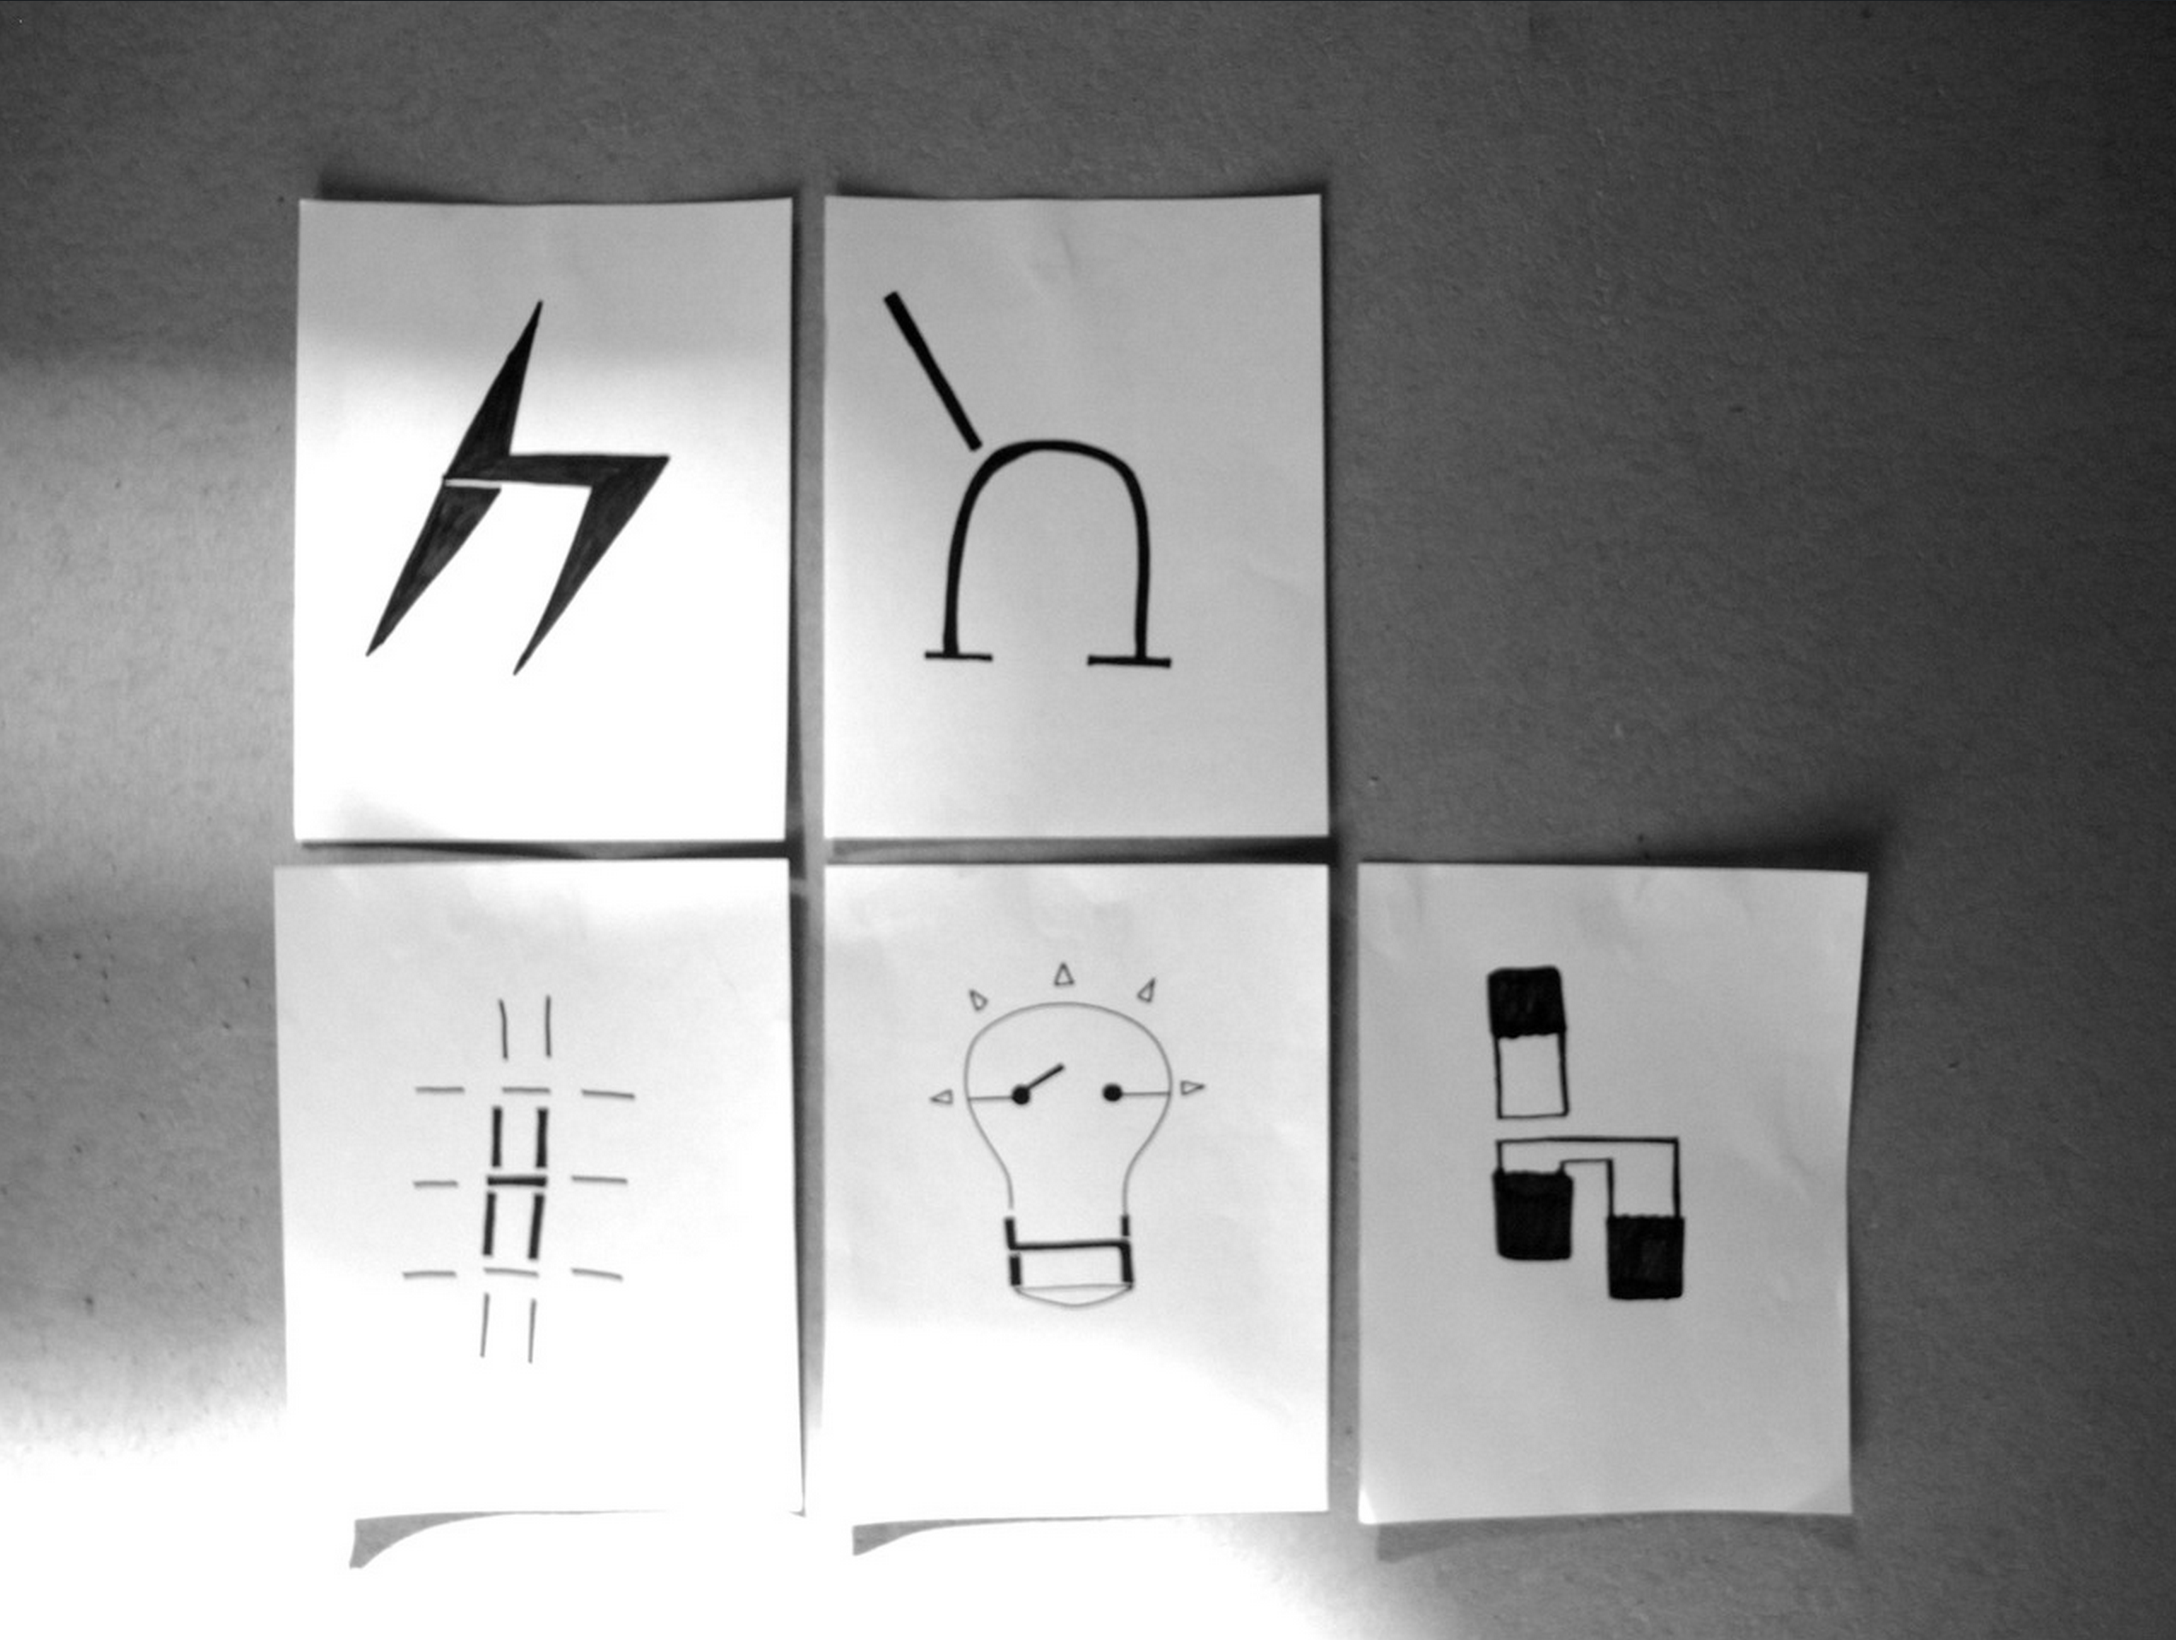 A few of the 'h' sketches from the timed in-class exercise.